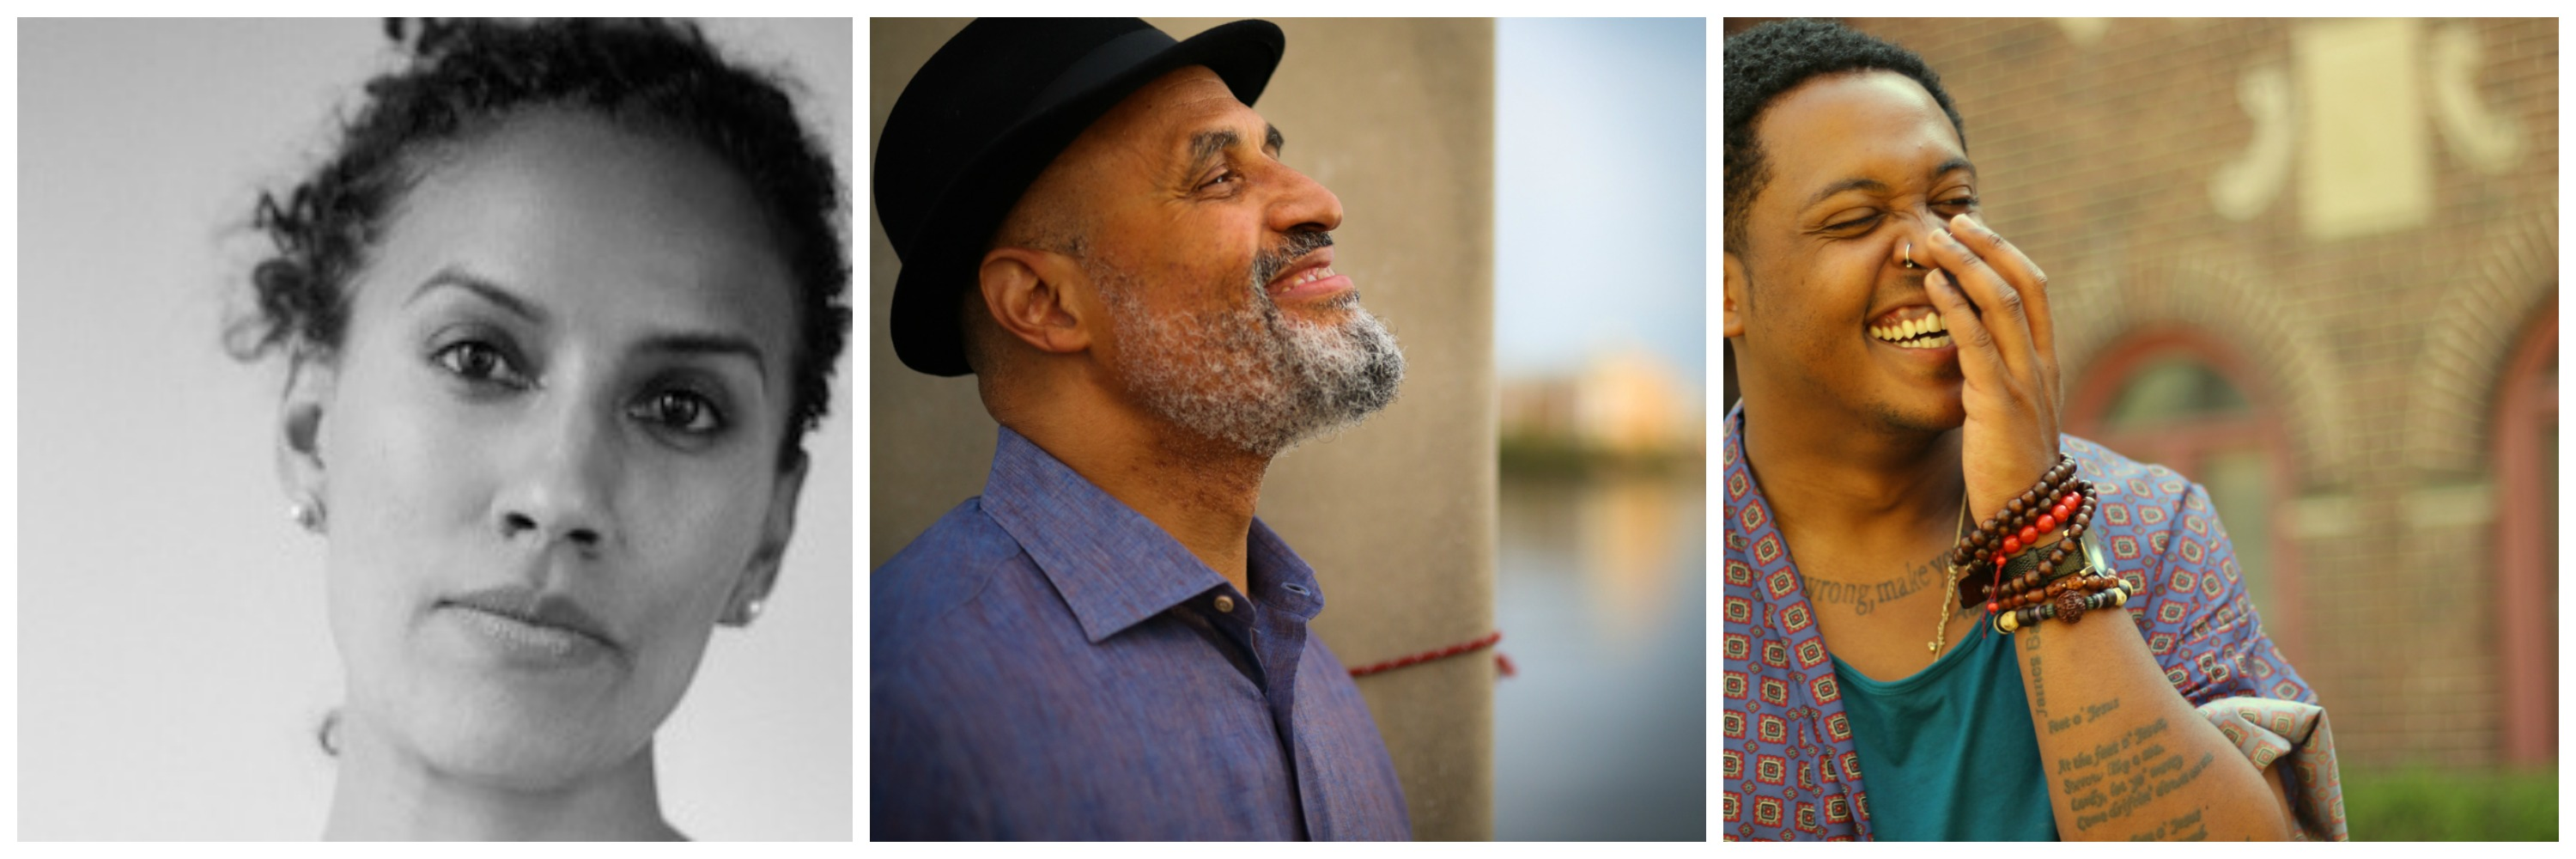 Photo collage of Aracelis Girmay, Tim Seibles, and Danez Smith (from left to right)